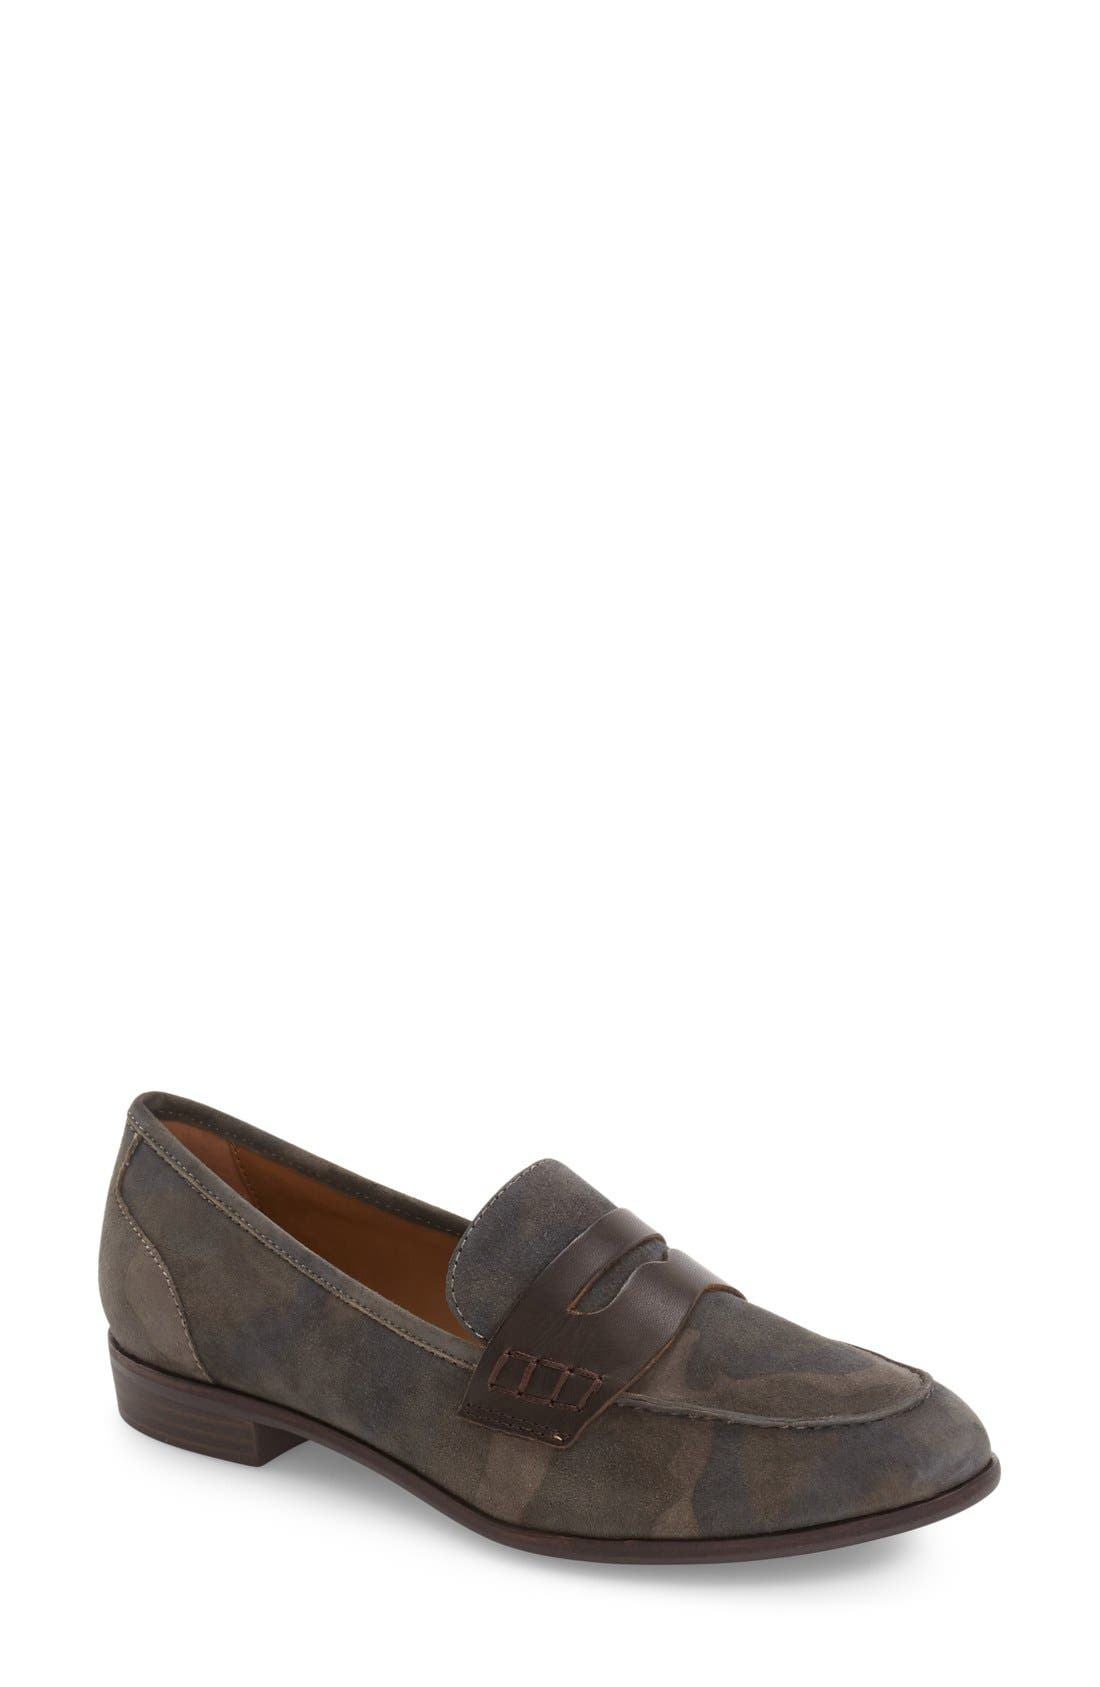 Emilia Penny Loafer,                         Main,                         color, Camo/ Espresso Suede